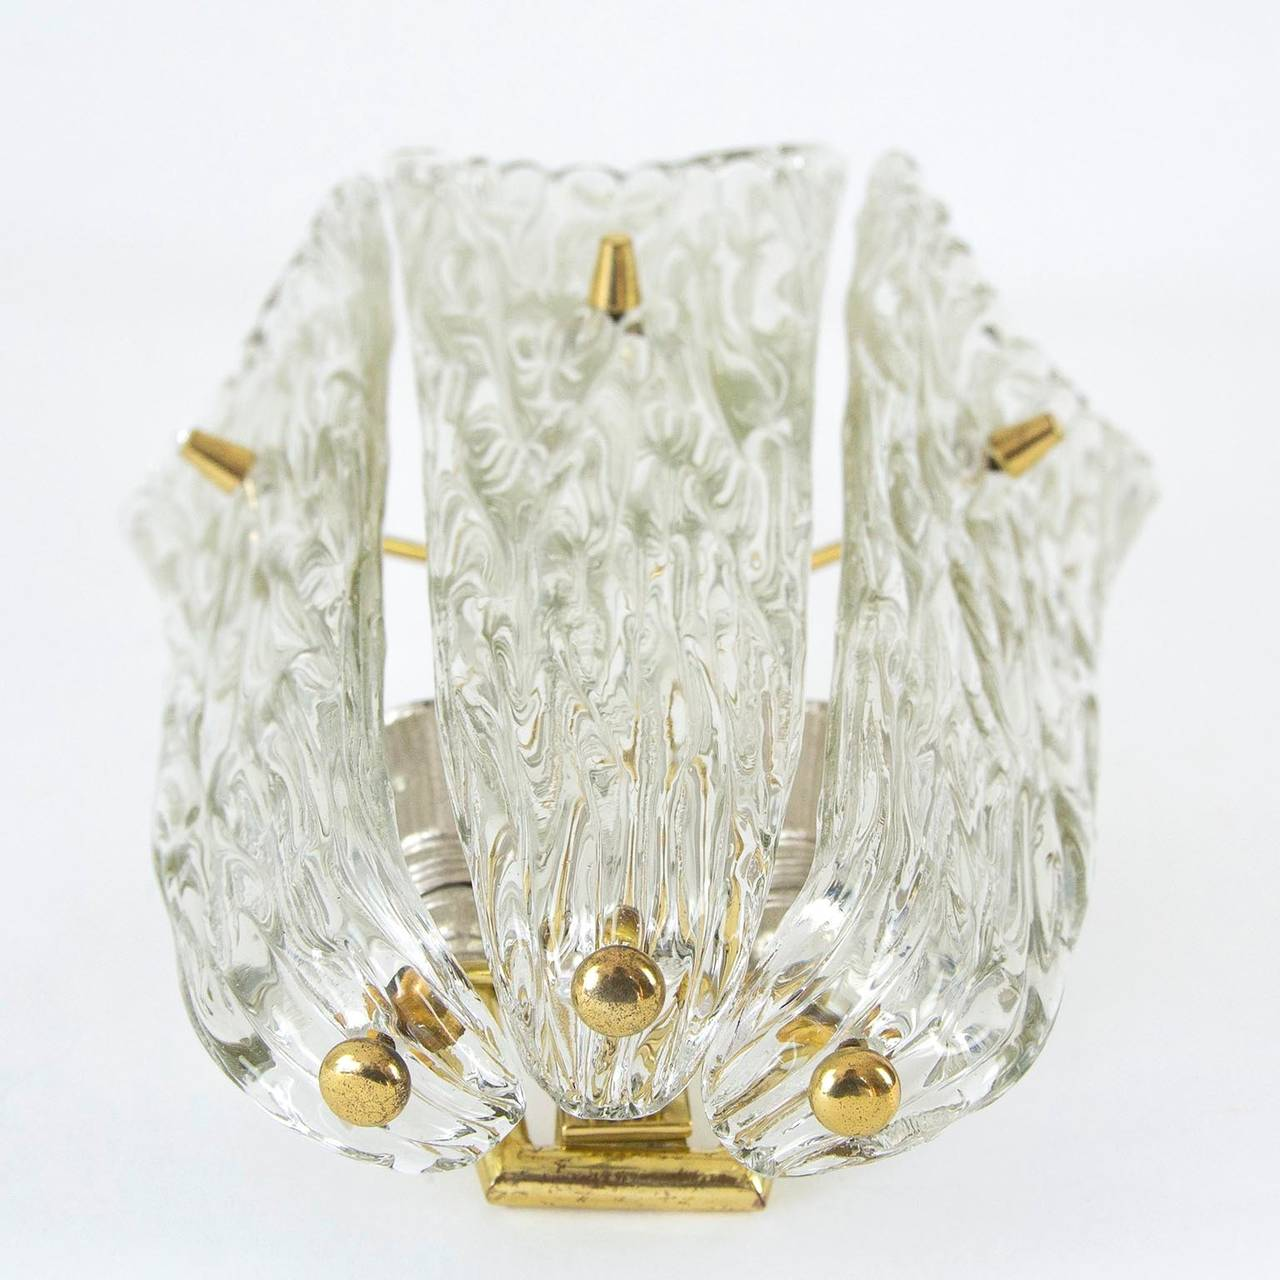 One of Three Textured Glass And Brass Wall Sconces by J.T. Kalmar, 1950s For Sale 2